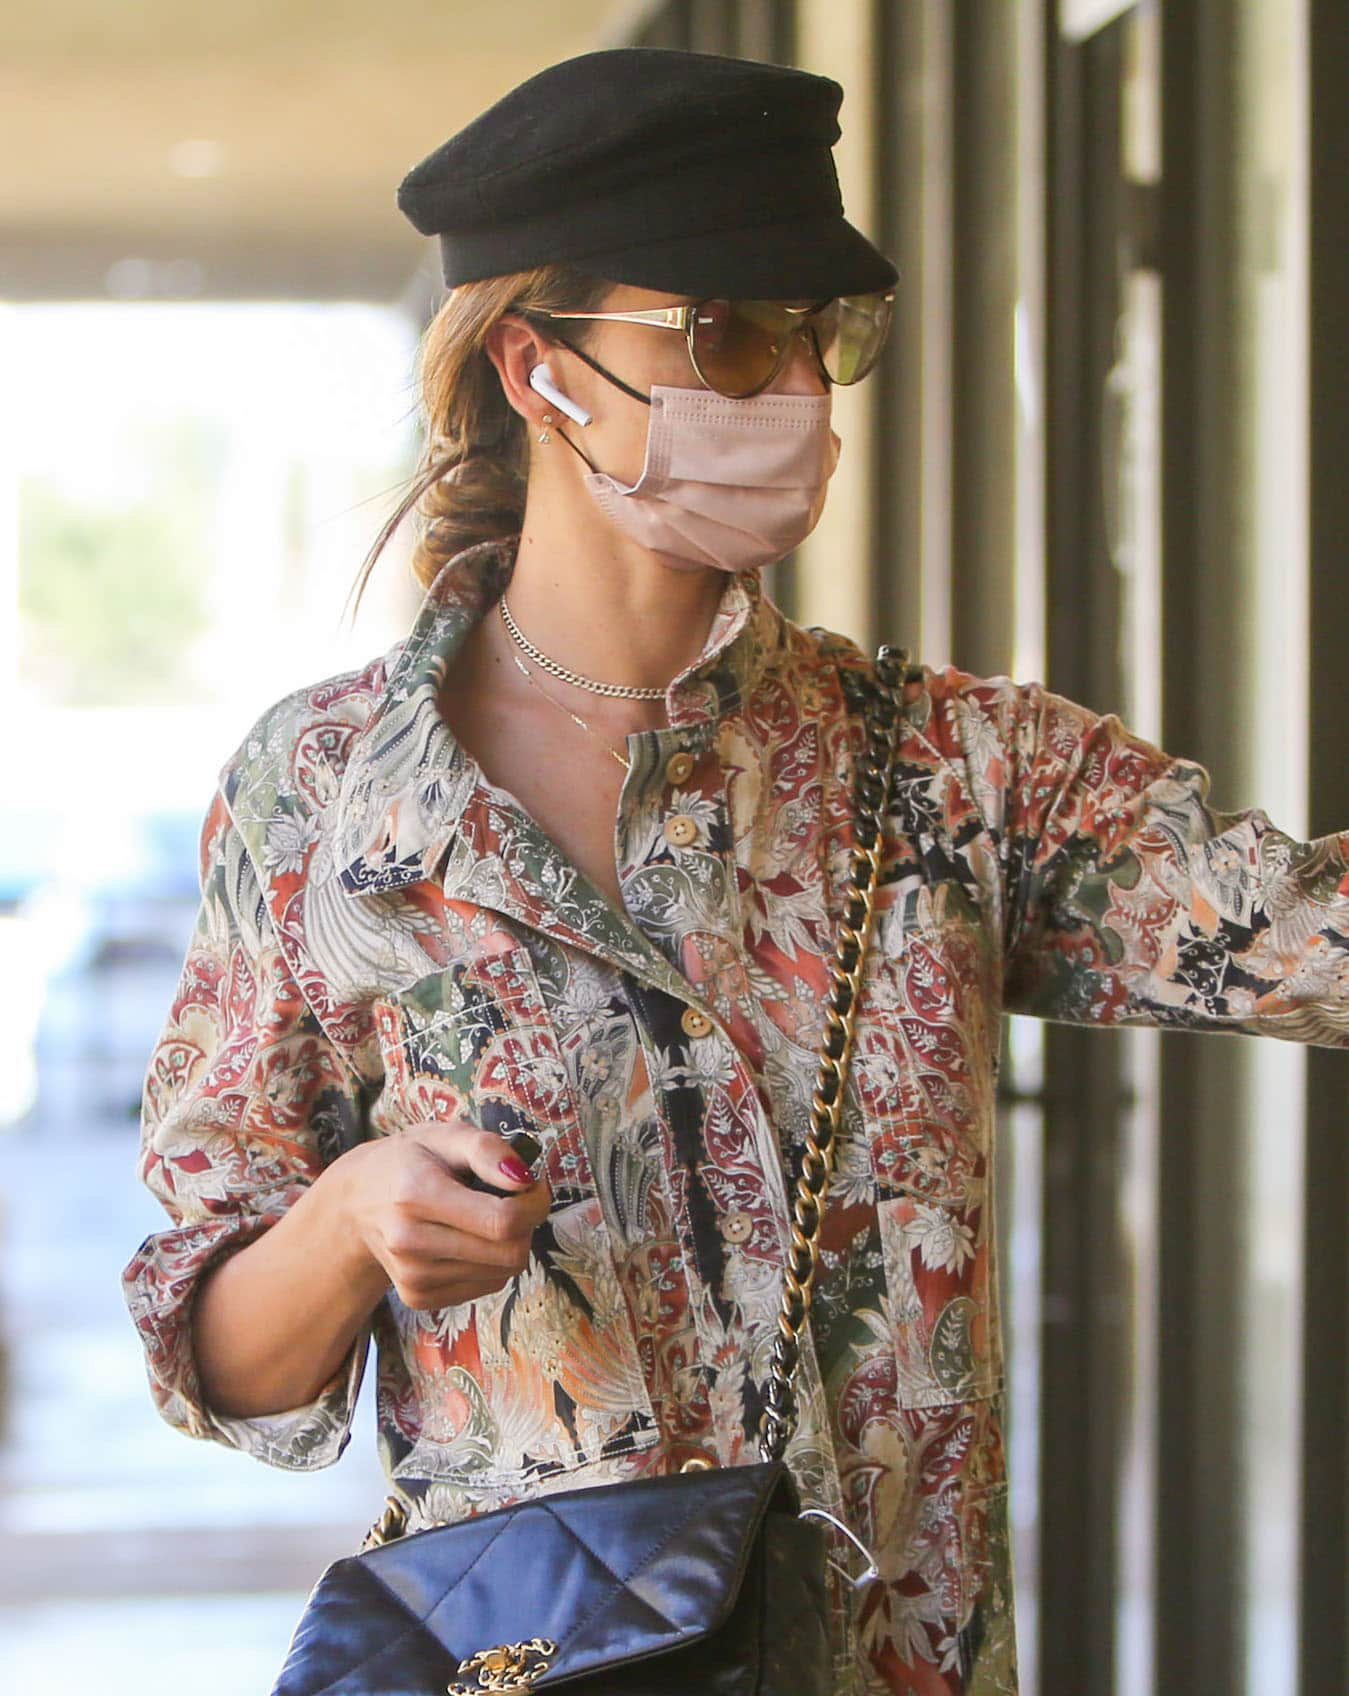 Alessandra Ambrosio looks chic with her braided ponytail under a black Breton cap